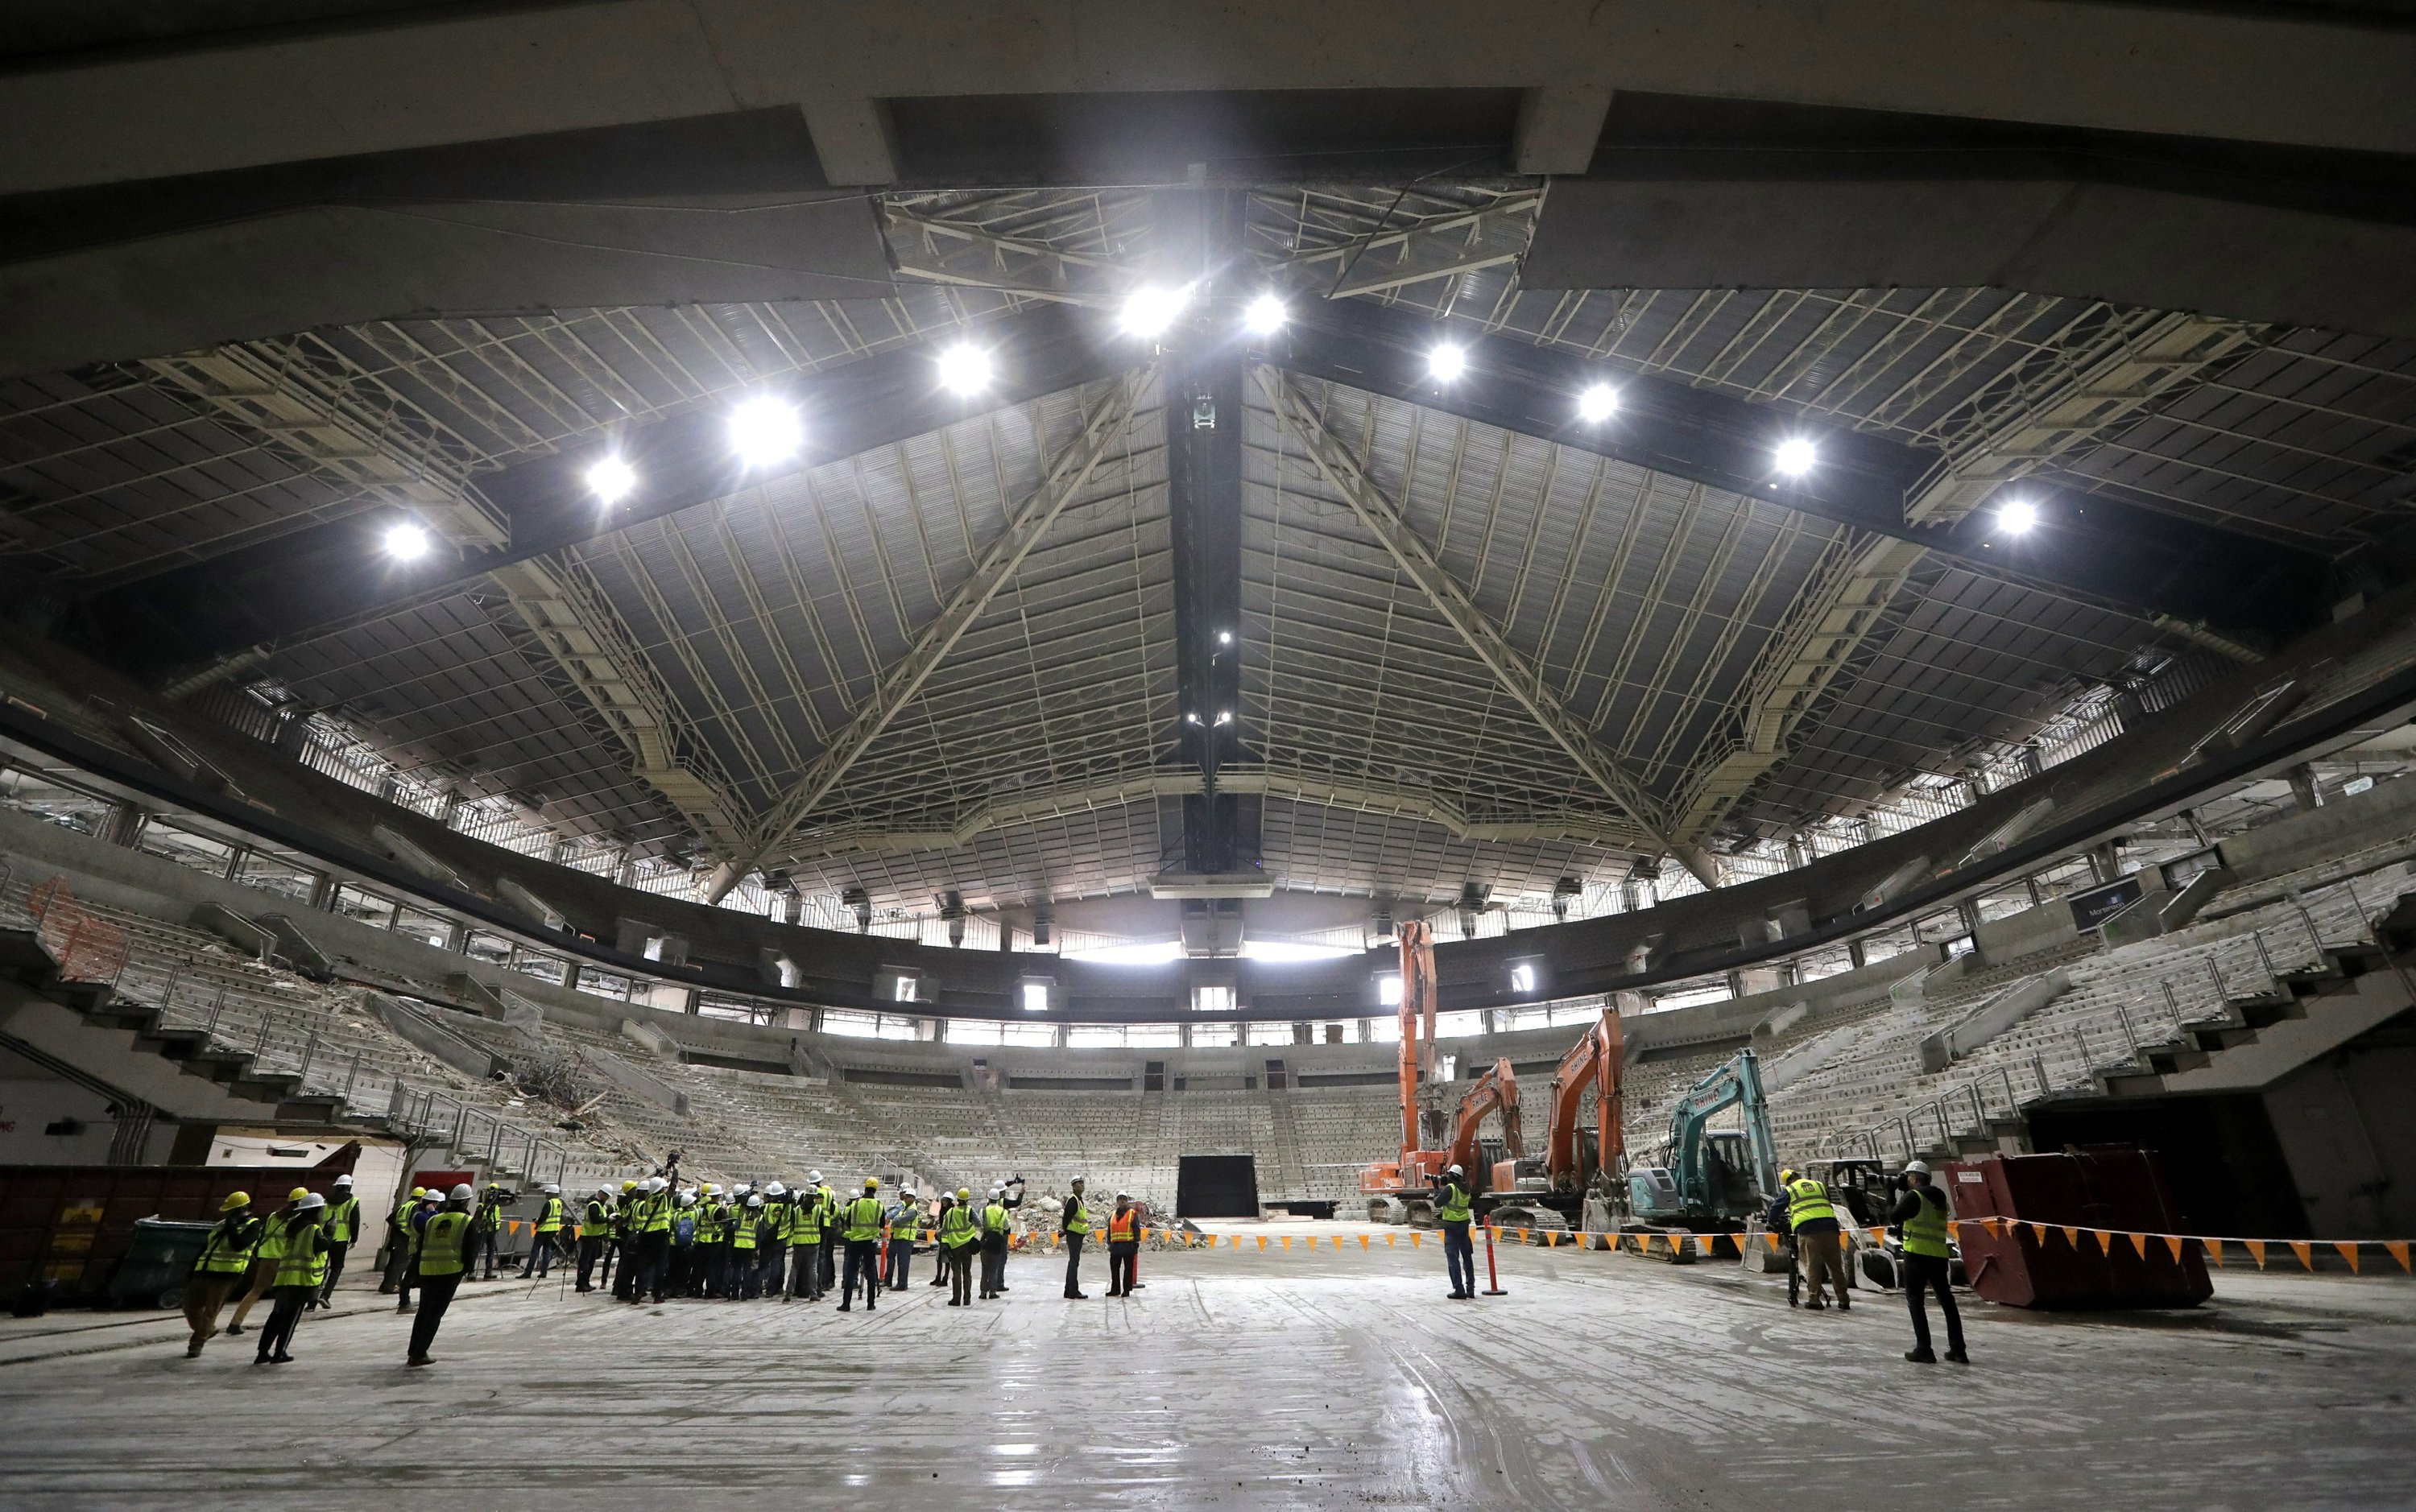 Seattle NHL arena not expected to open until middle of 2021